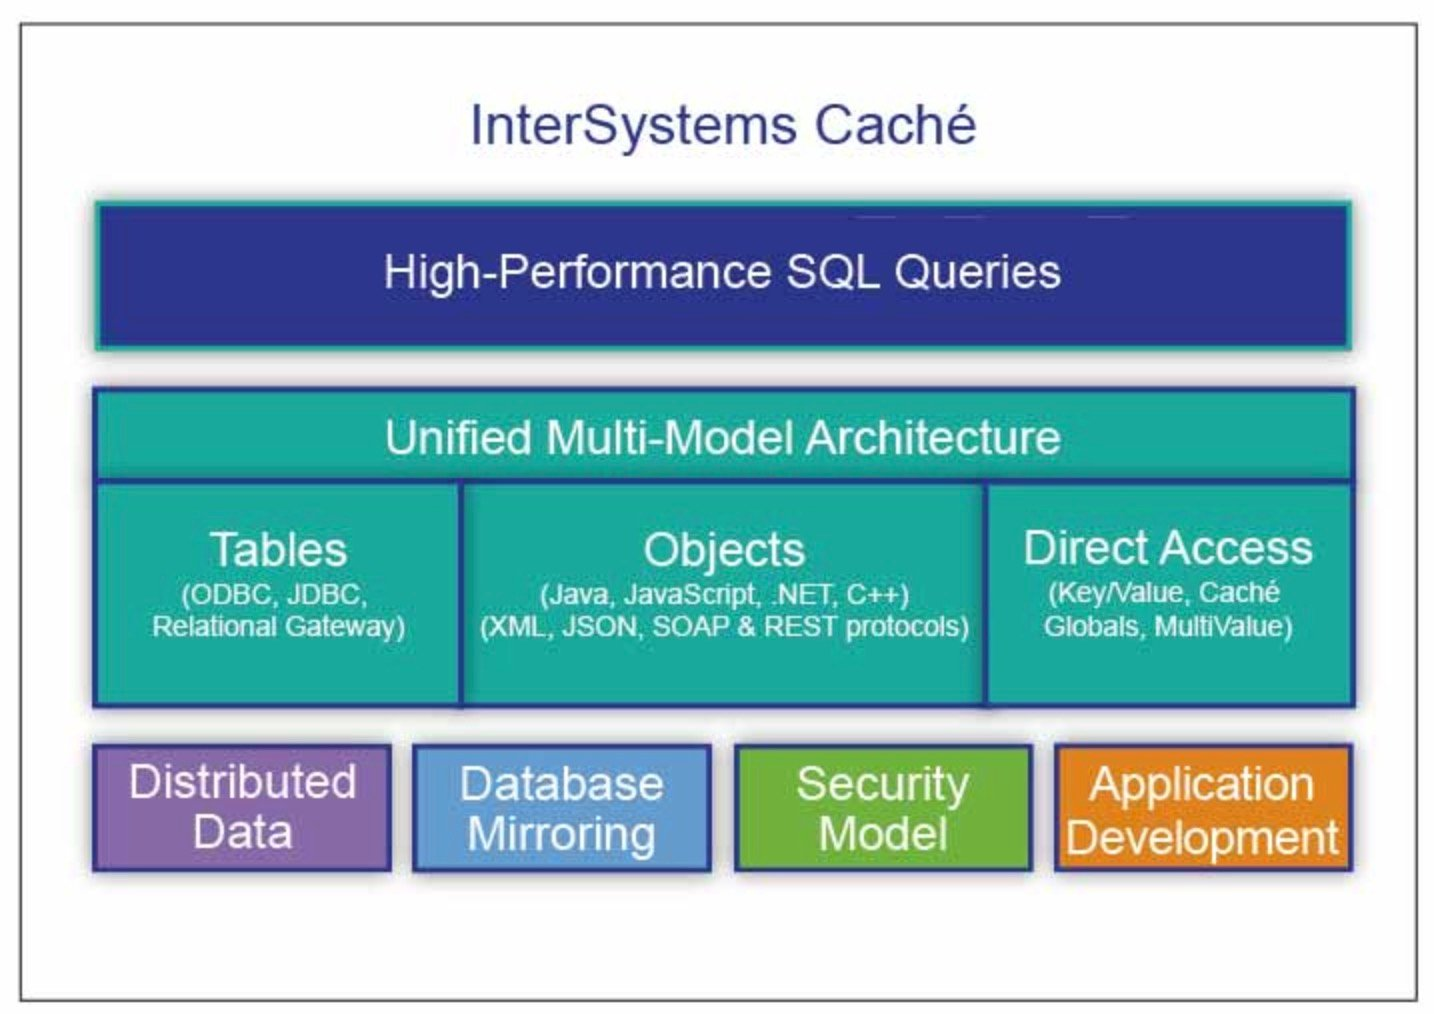 InterSystems Cache Demo - InterSystems Caché Architercute